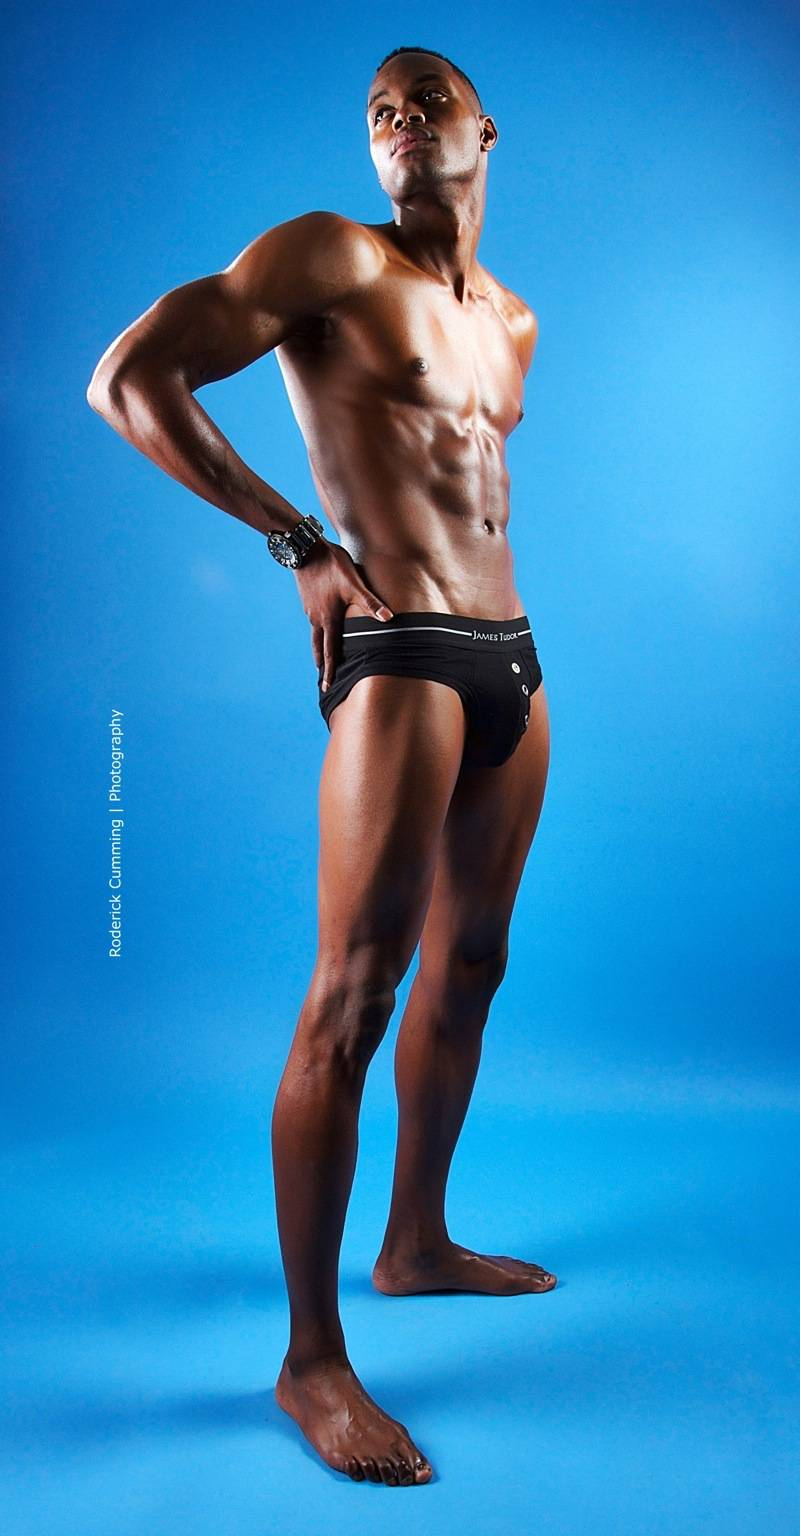 Male model photo shoot of Dwayne Bright by IconPhotoWorks in Toronto, Canada